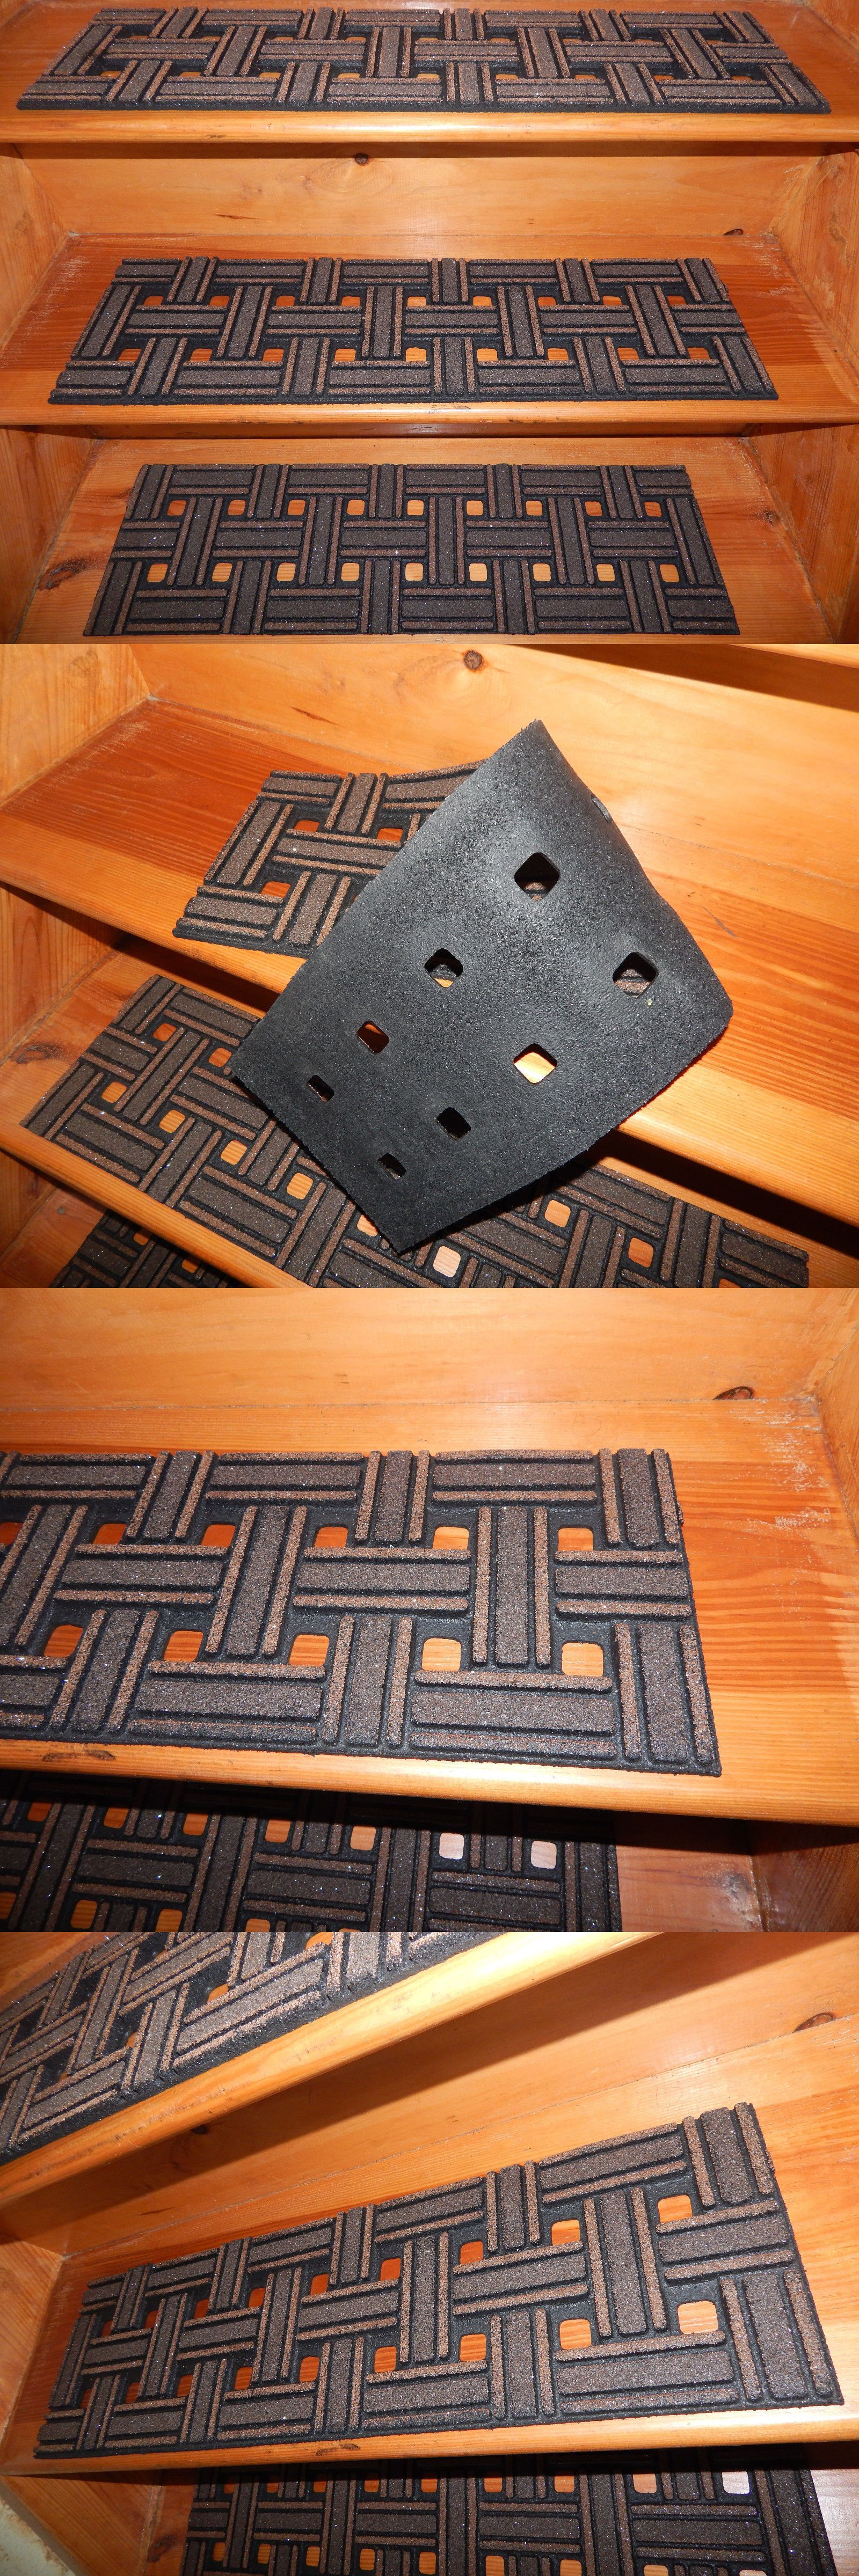 Best Stair Treads 175517 4 Step 8 1 2 X 30 100 Rubber 400 x 300